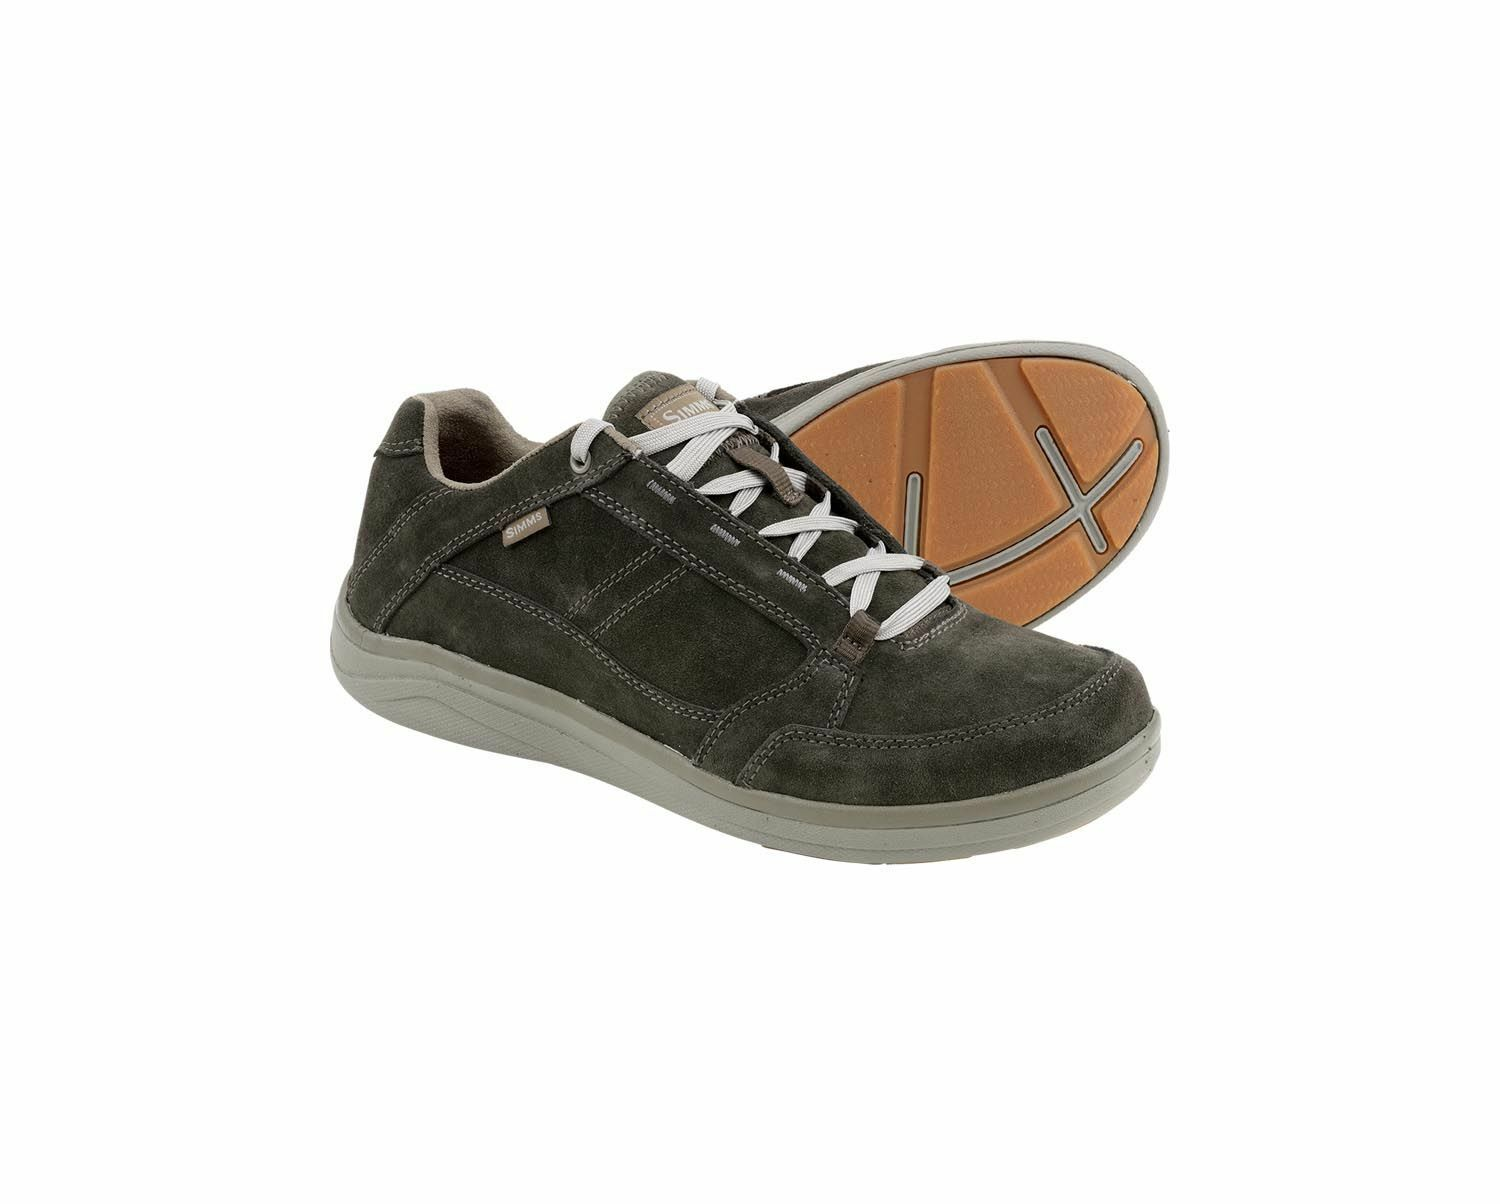 Simms Westshore  Leather shoes Dark Olive - Size 8.5 -CLOSEOUT  discount low price